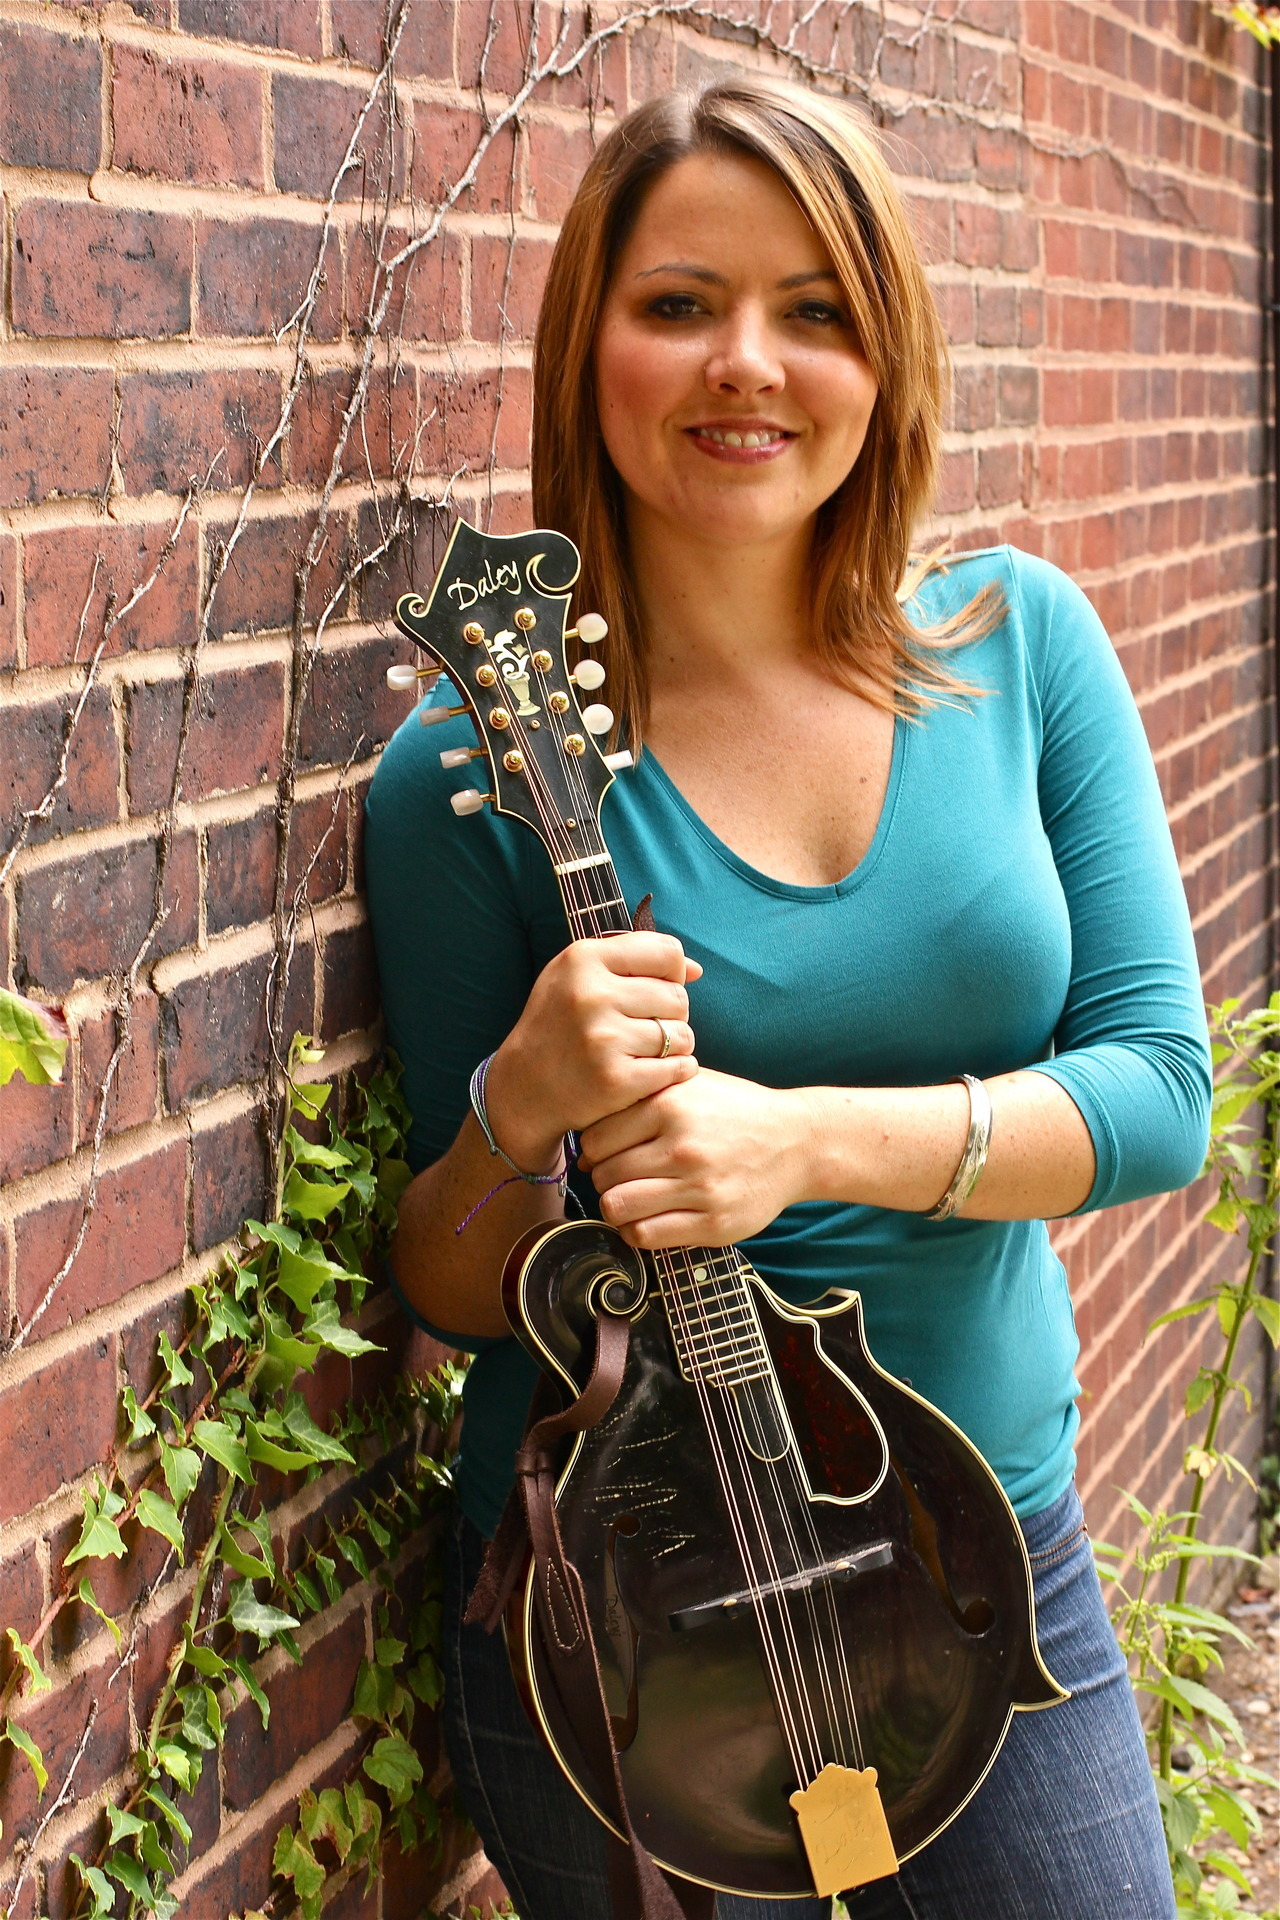 Photos of Jenni Lyn Gardner (mandolinist, Della Mae) by MDM.